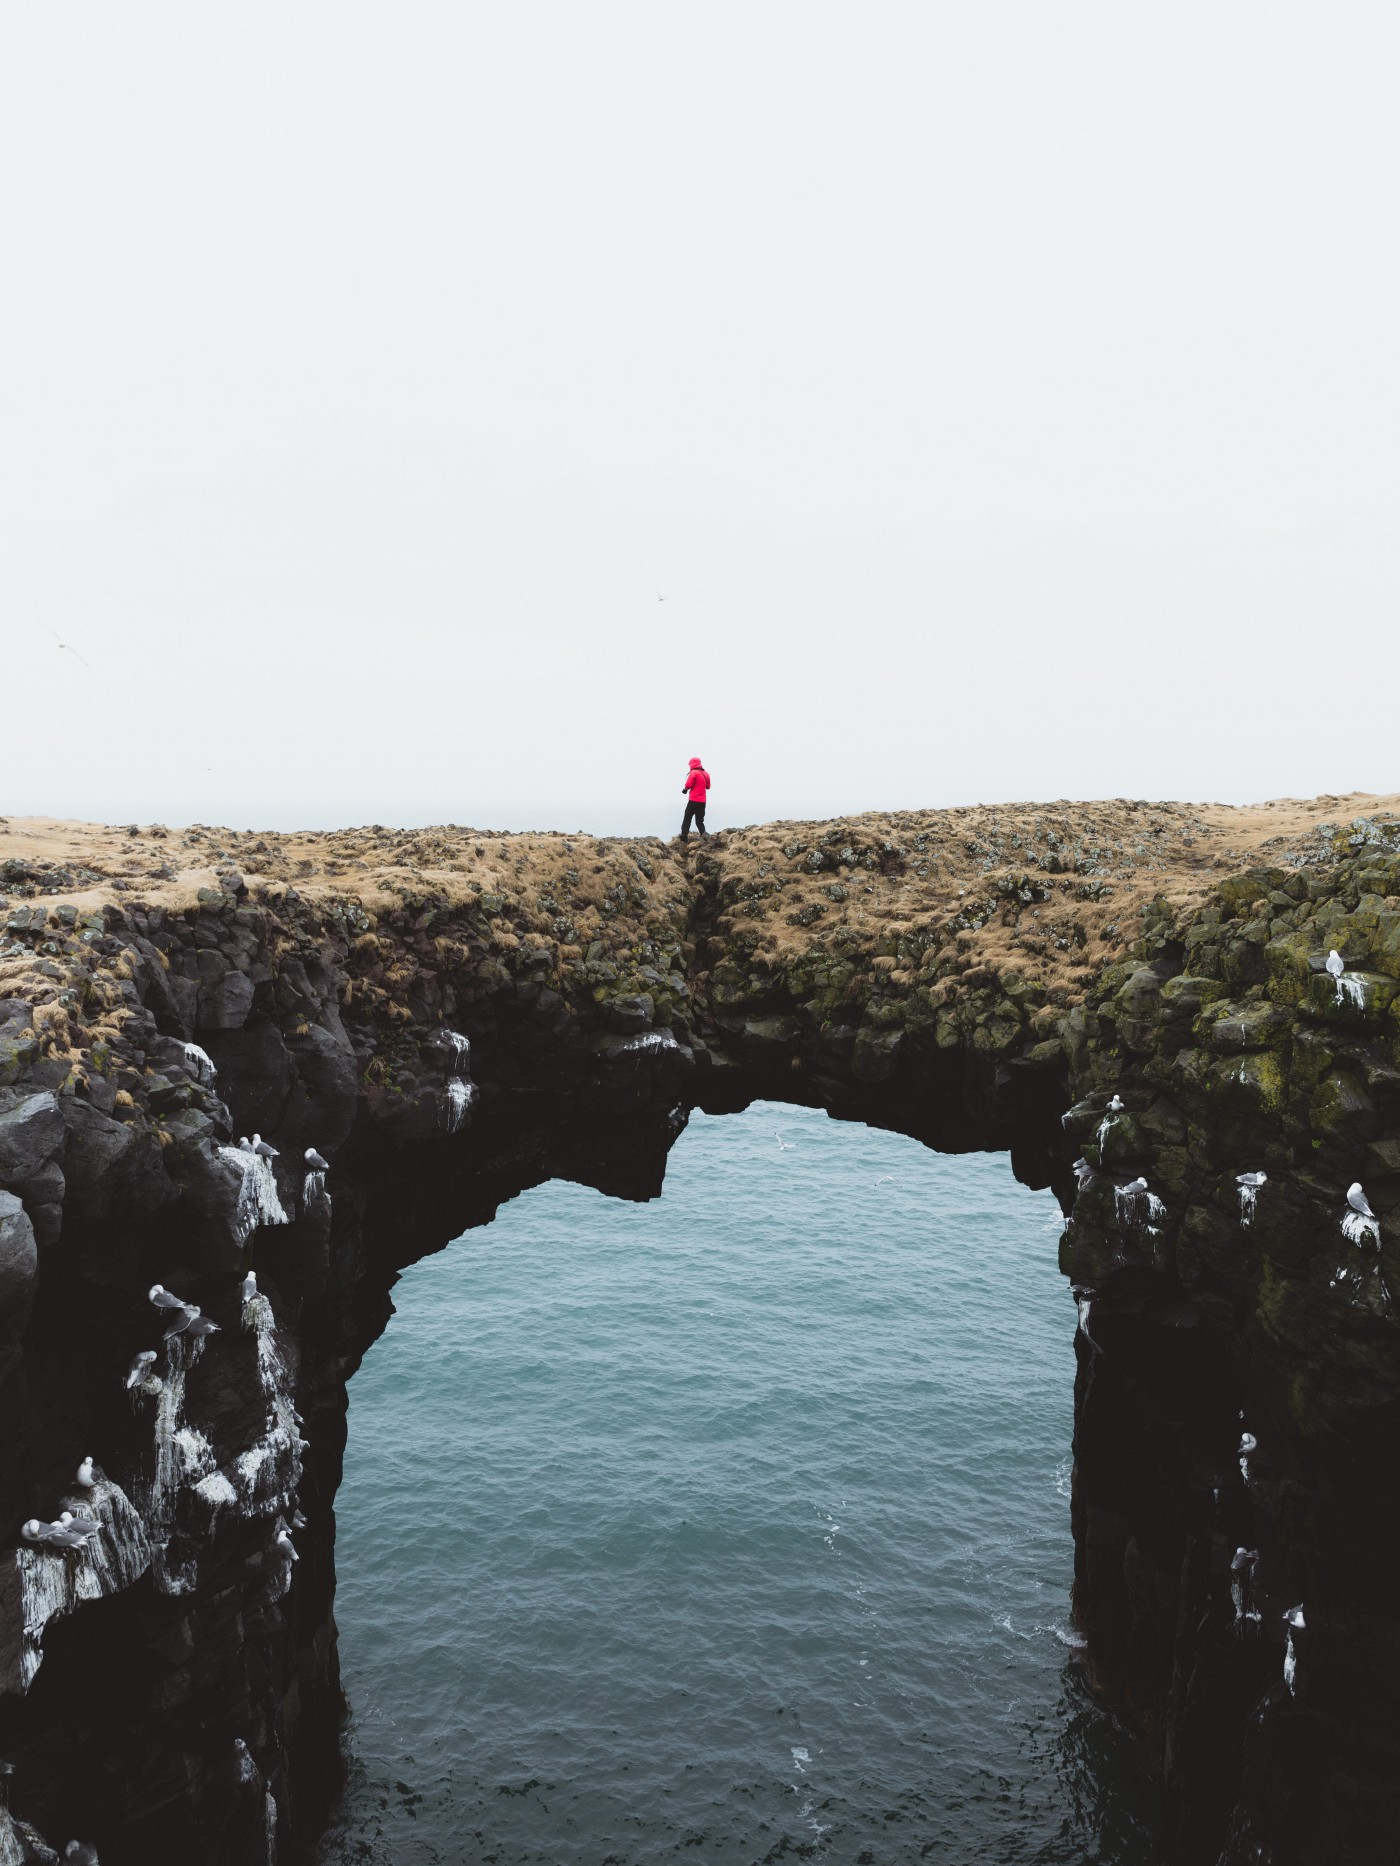 A person in a red rain jacket against a grey sky stands on jagged rocks spanning across water.